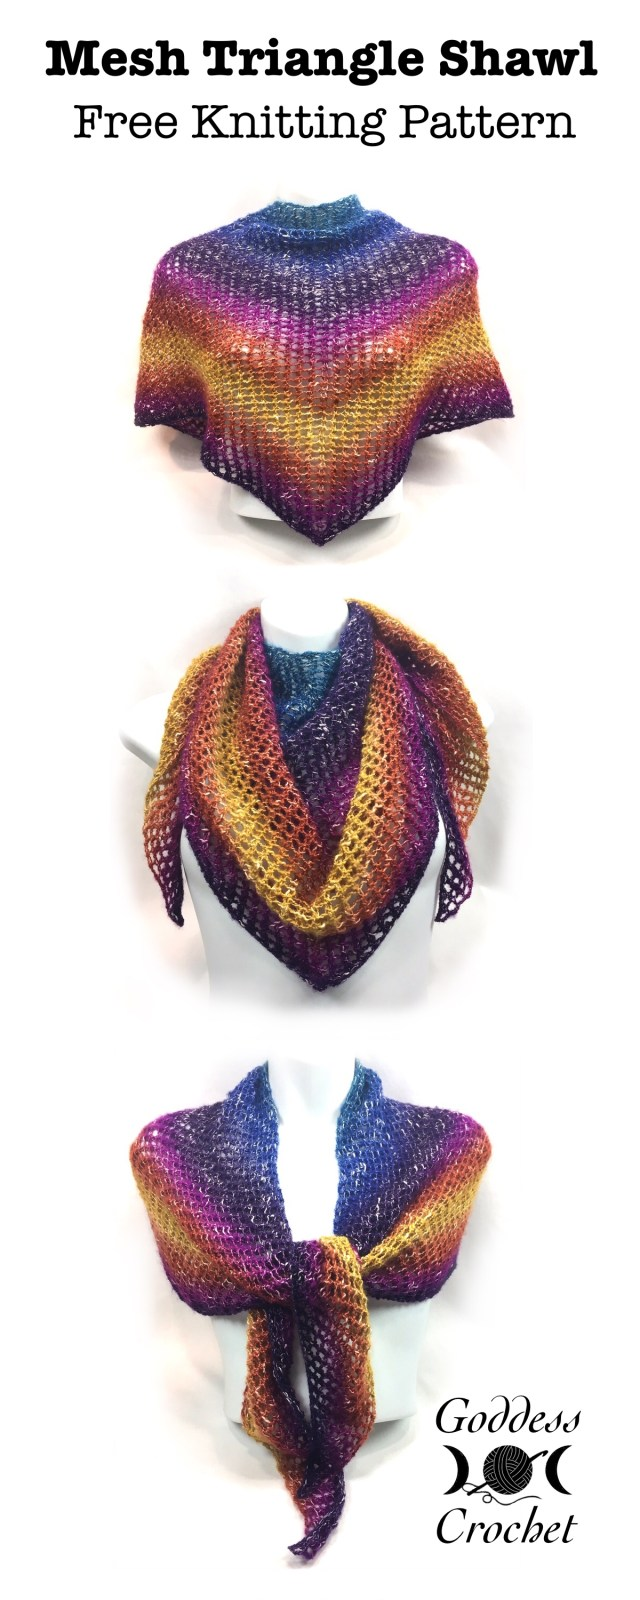 Mesh Triangle Shawl - Free Knitting Pattern